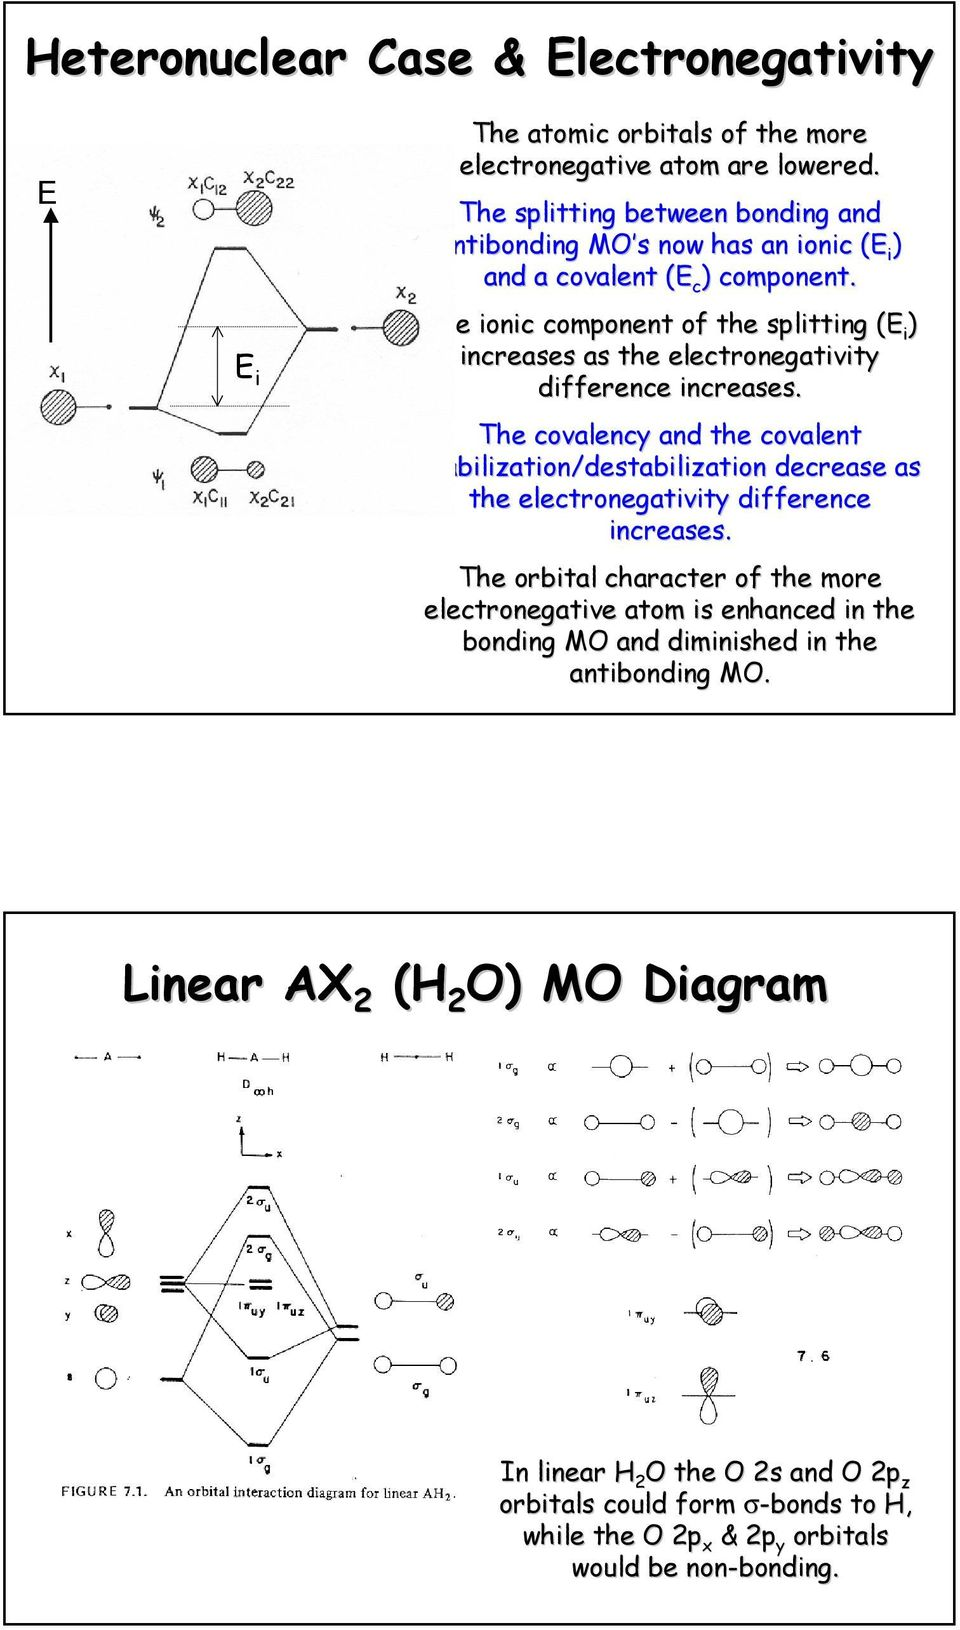 The ionic component of the splitting (( i ) increases as the electronegativity difference increases.